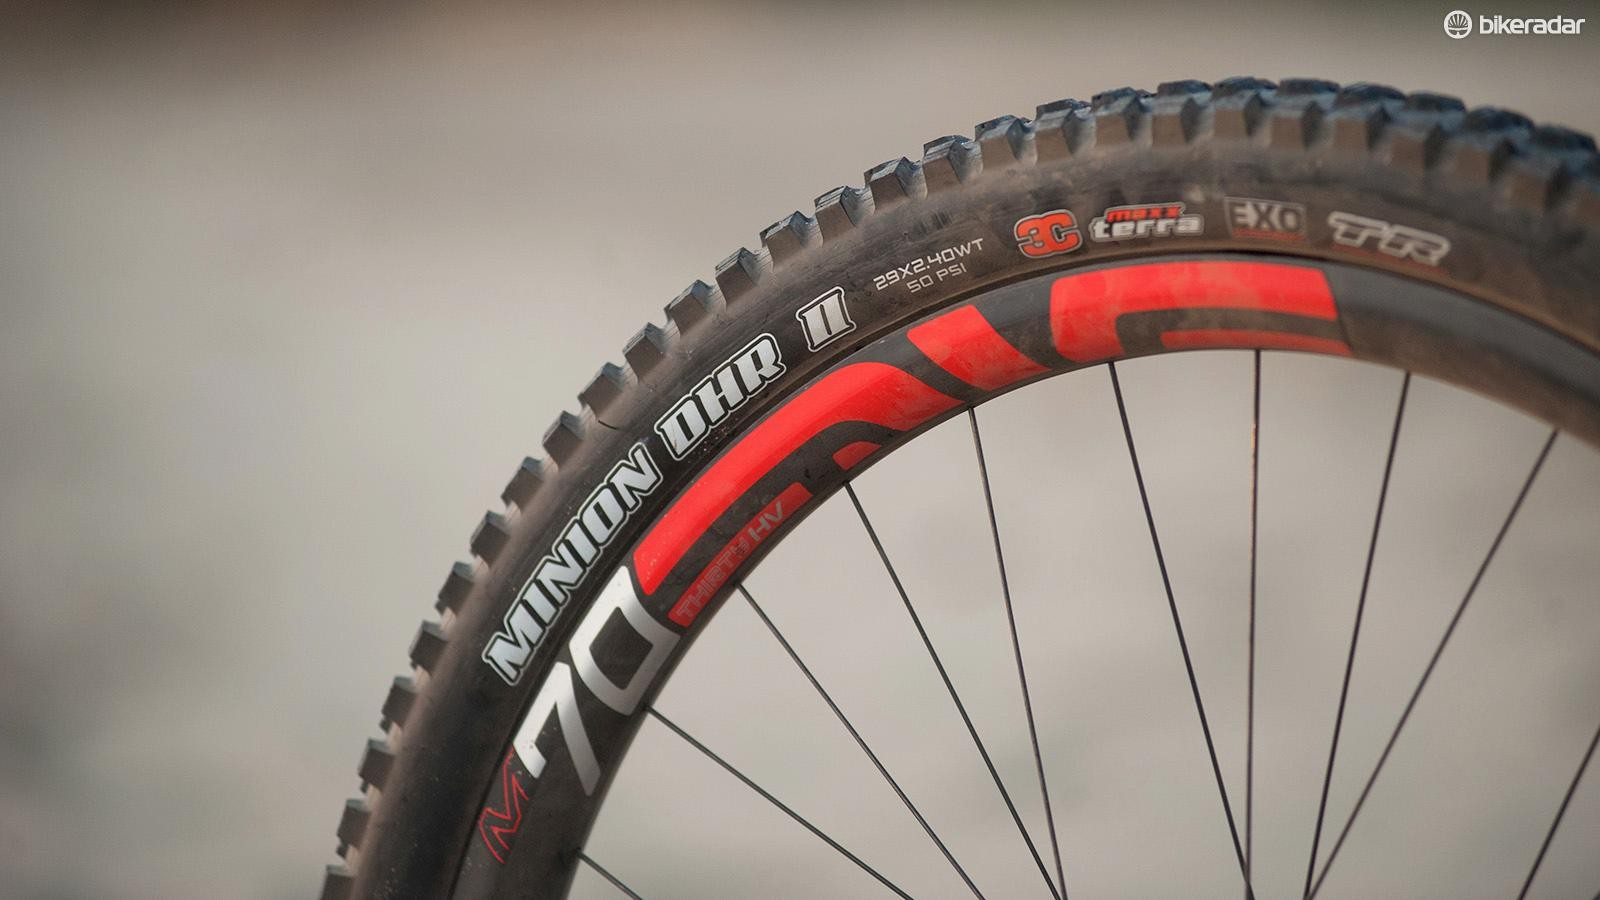 Wide rubber is generally improved when mounted to wide rims, Enve M70s do the business here